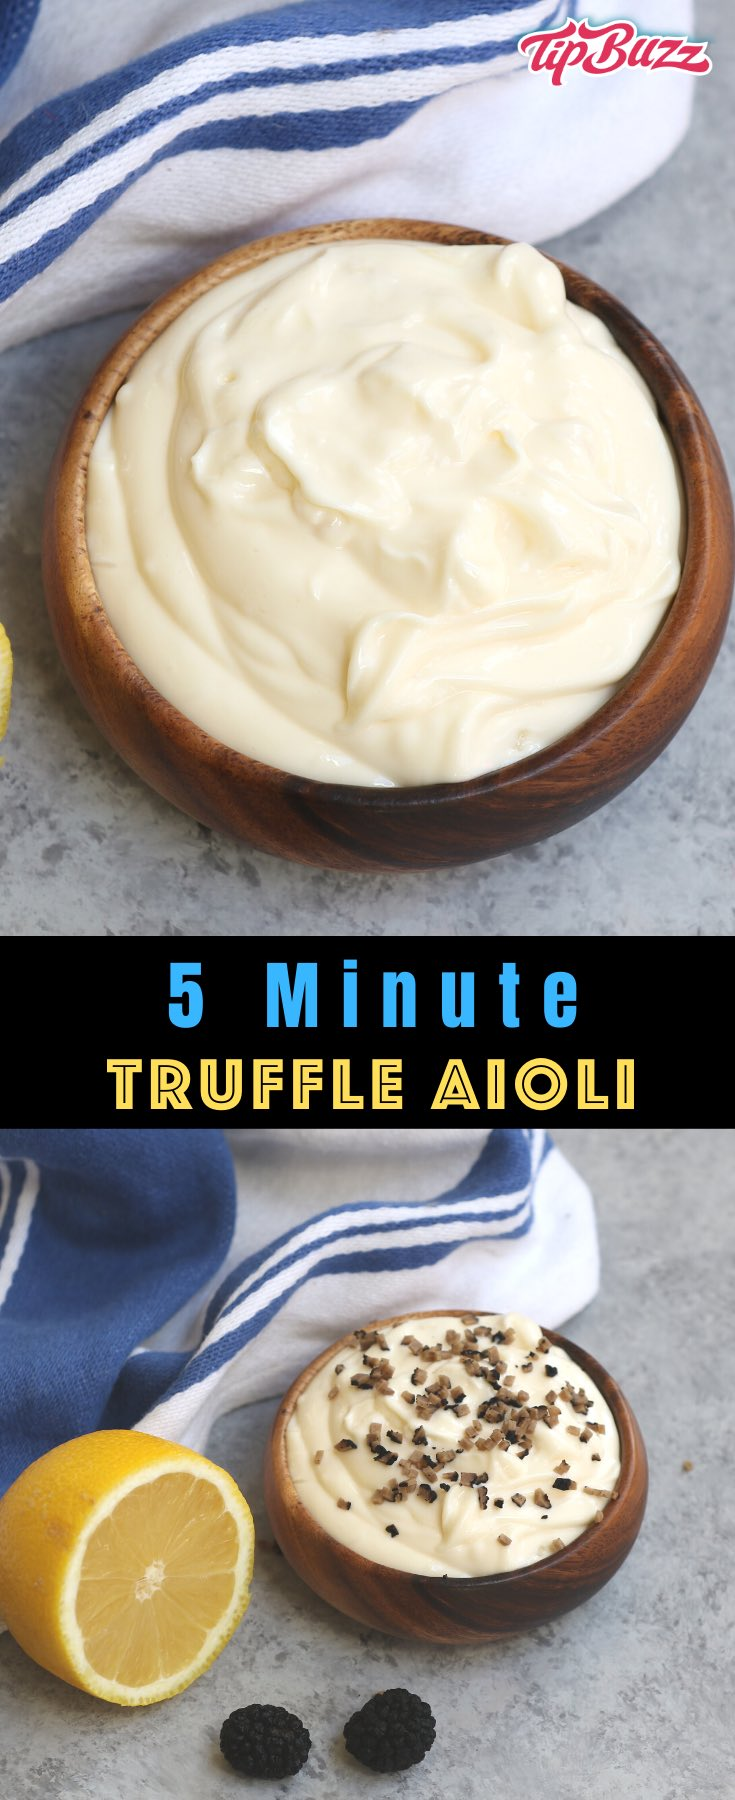 This Homemade Truffle Aioli is a creamy condiment that's easy to make. Spread this homemade truffle mayo onto burgers, sandwiches and seafood for a burst of flavor. Or serve it as a dipping sauce with French fries, onion rings or your favorite vegetables!